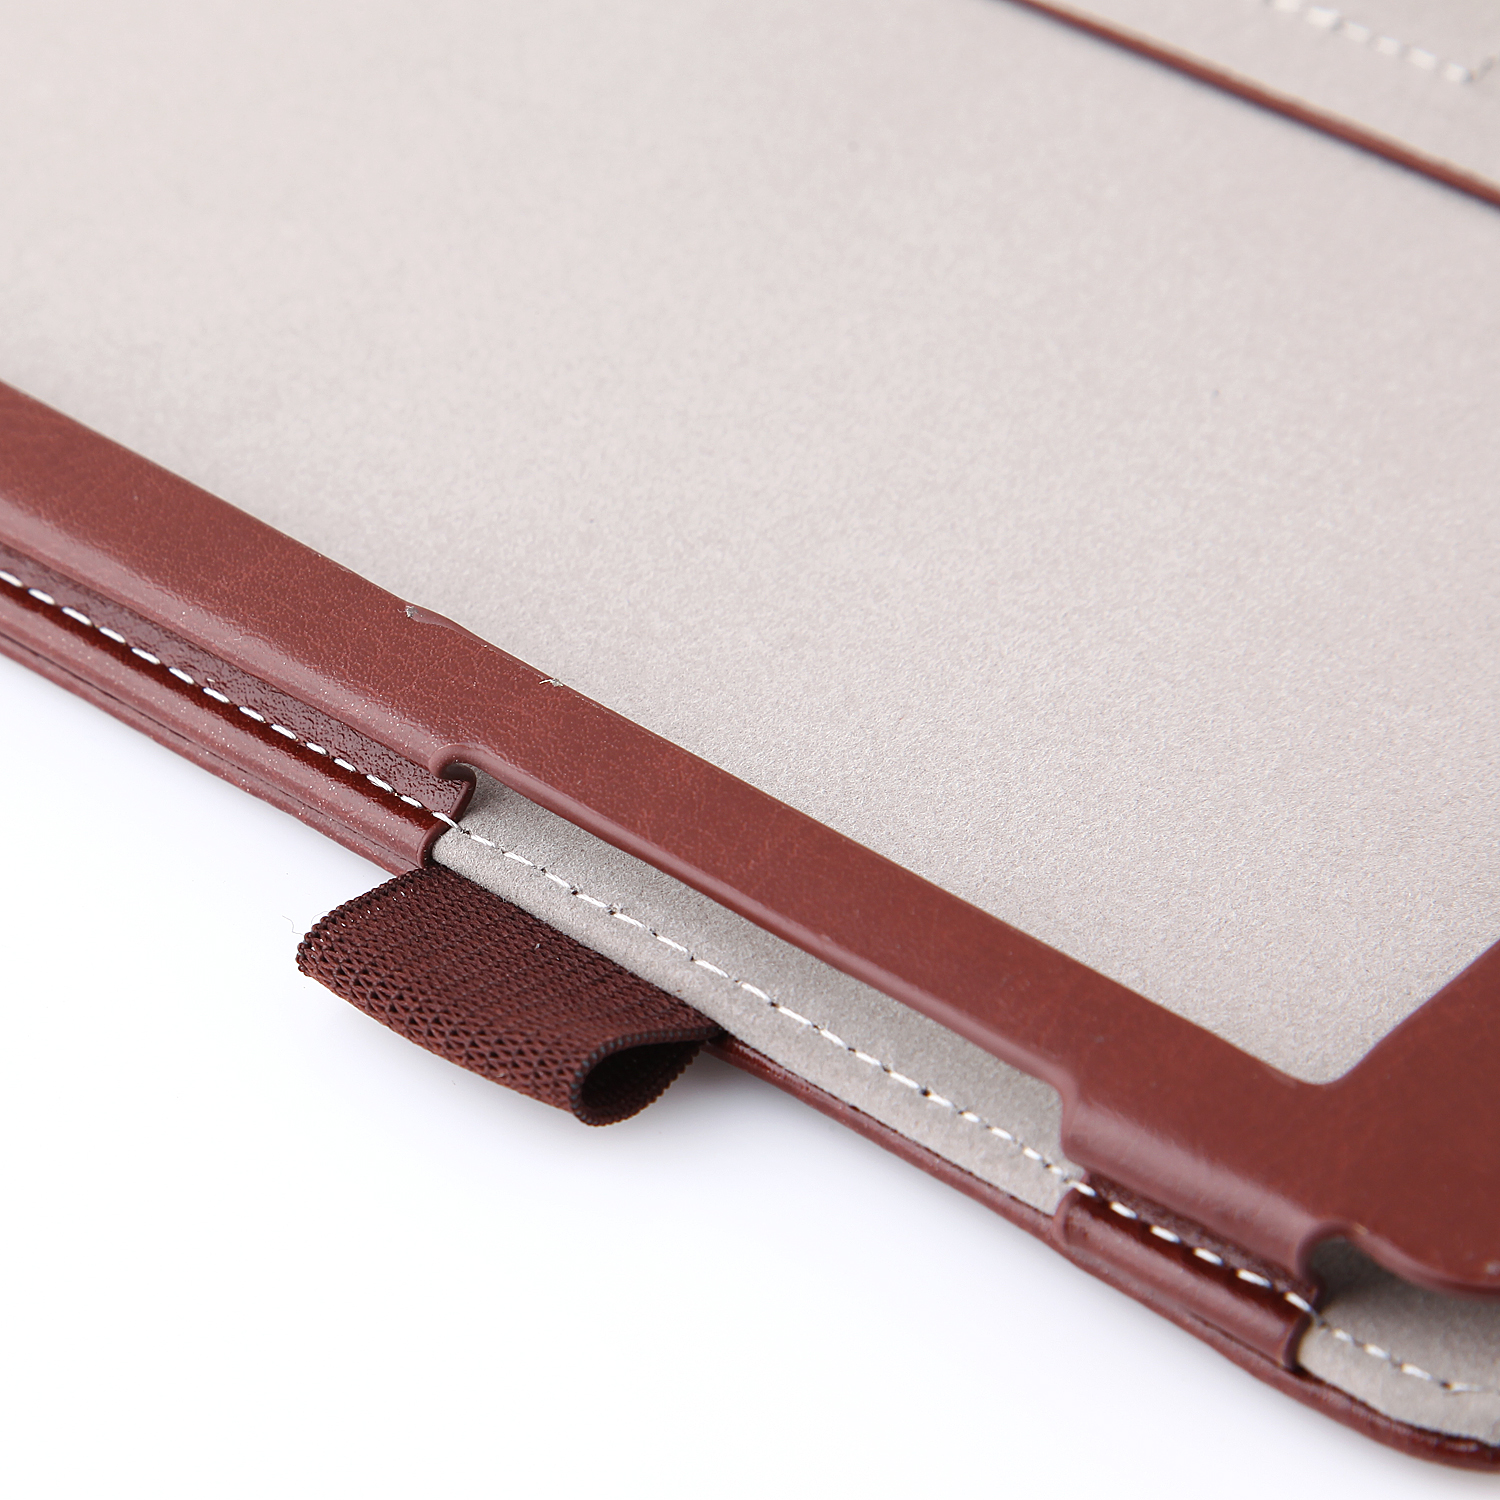 Protective PU Leather Stand Case Cover for the Mi Pad - Brown